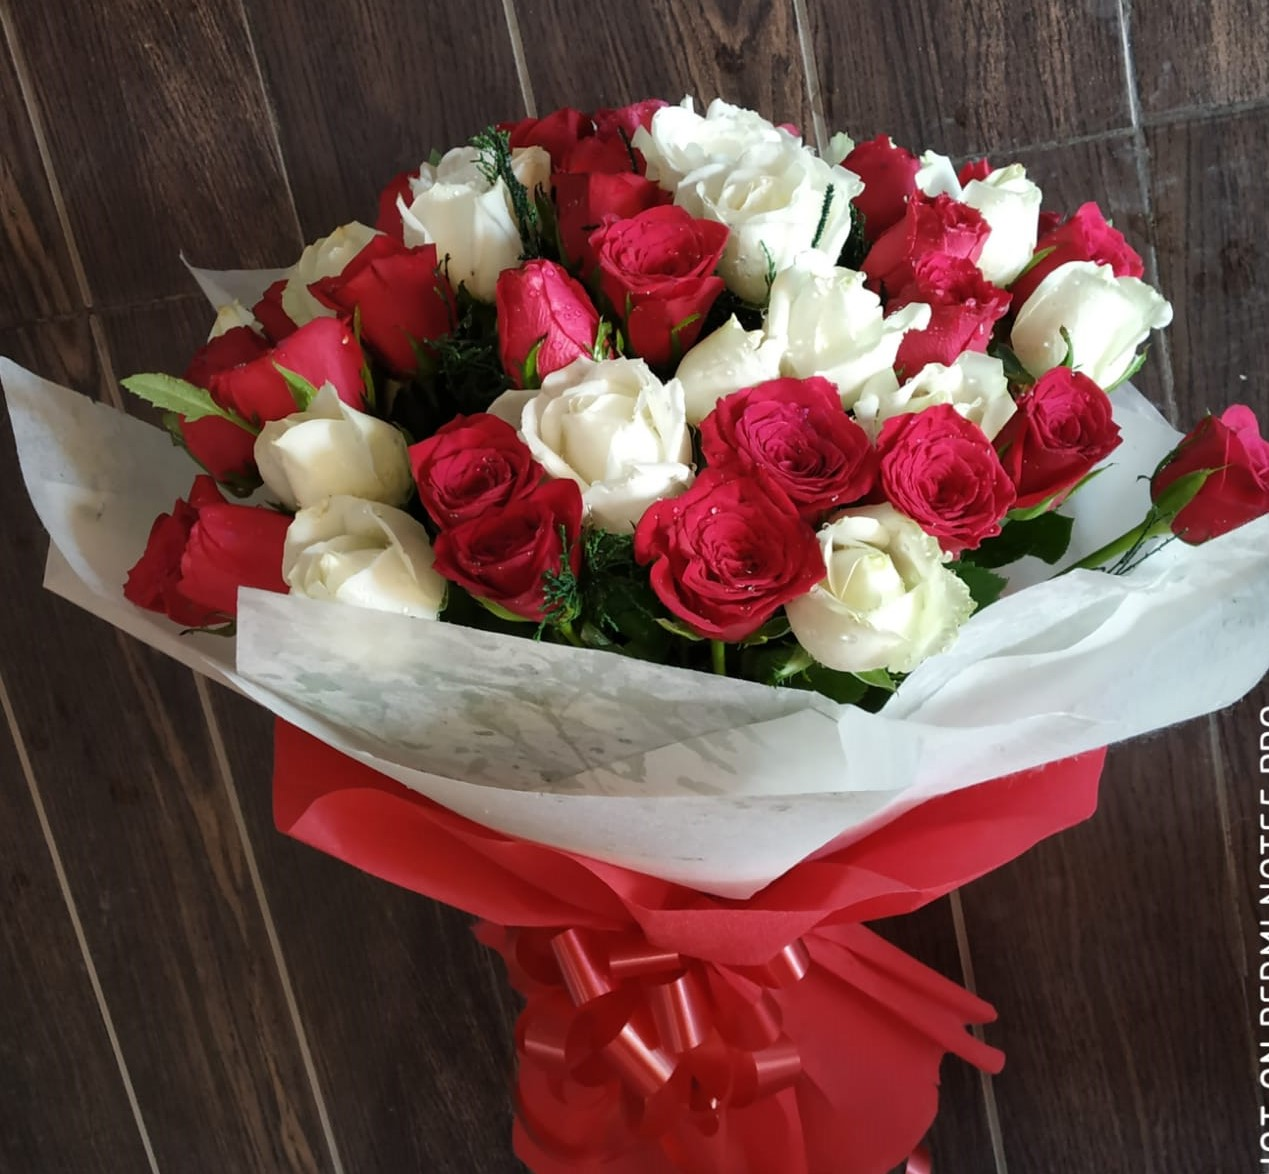 Flowers Delivery in Sector 6 GurgaonRed & White Roses in Duble Layer Packing